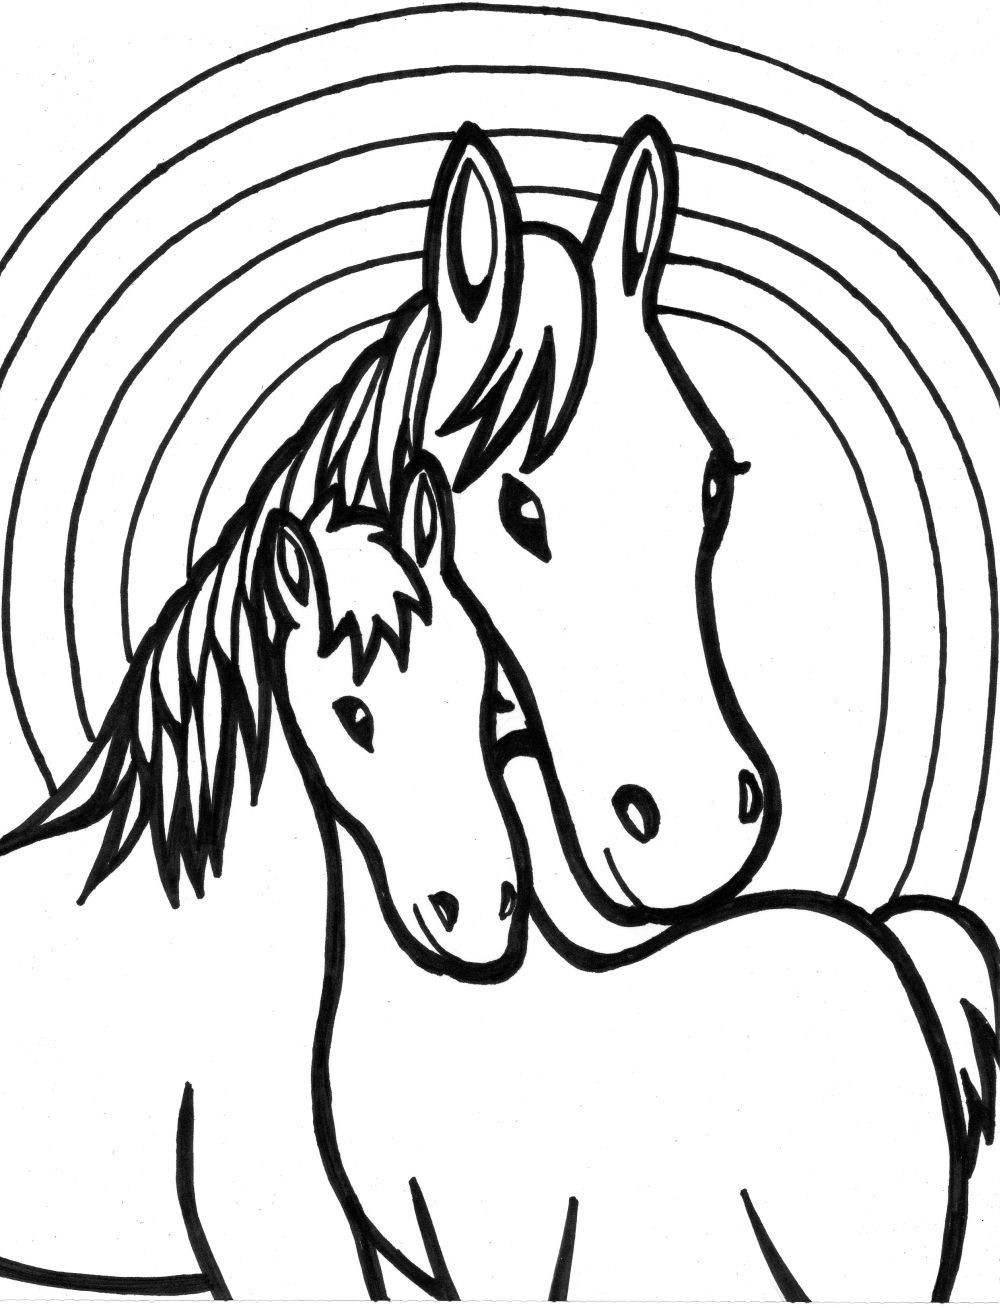 Coloring Pages For Girls (5) - Coloring Kids